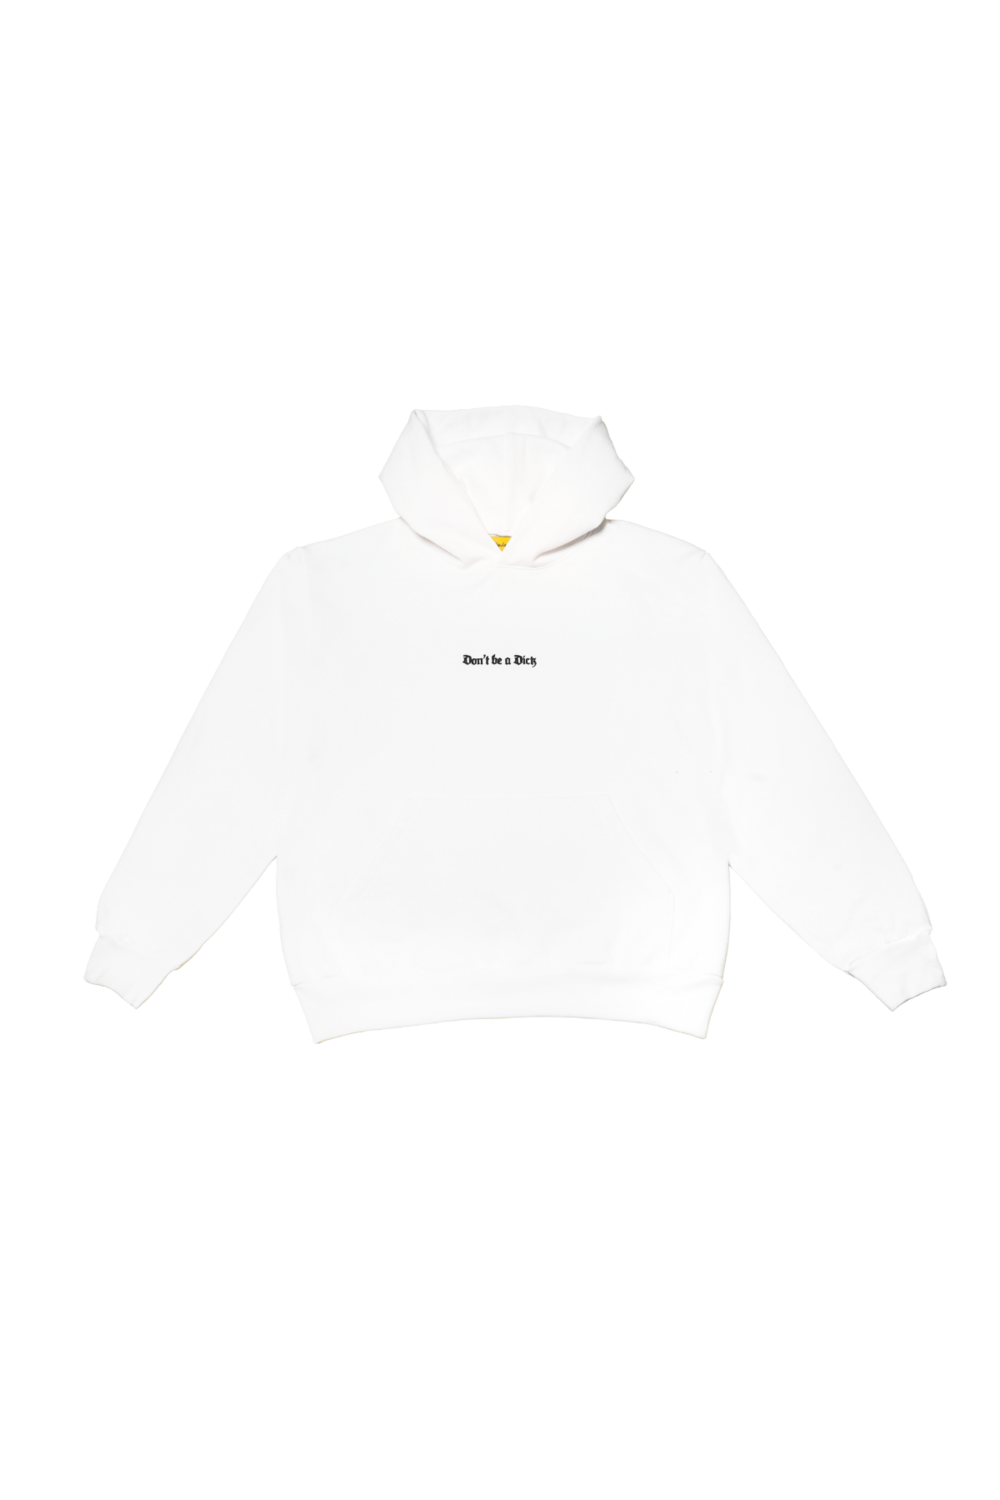 Don't be a Dick Hoodie